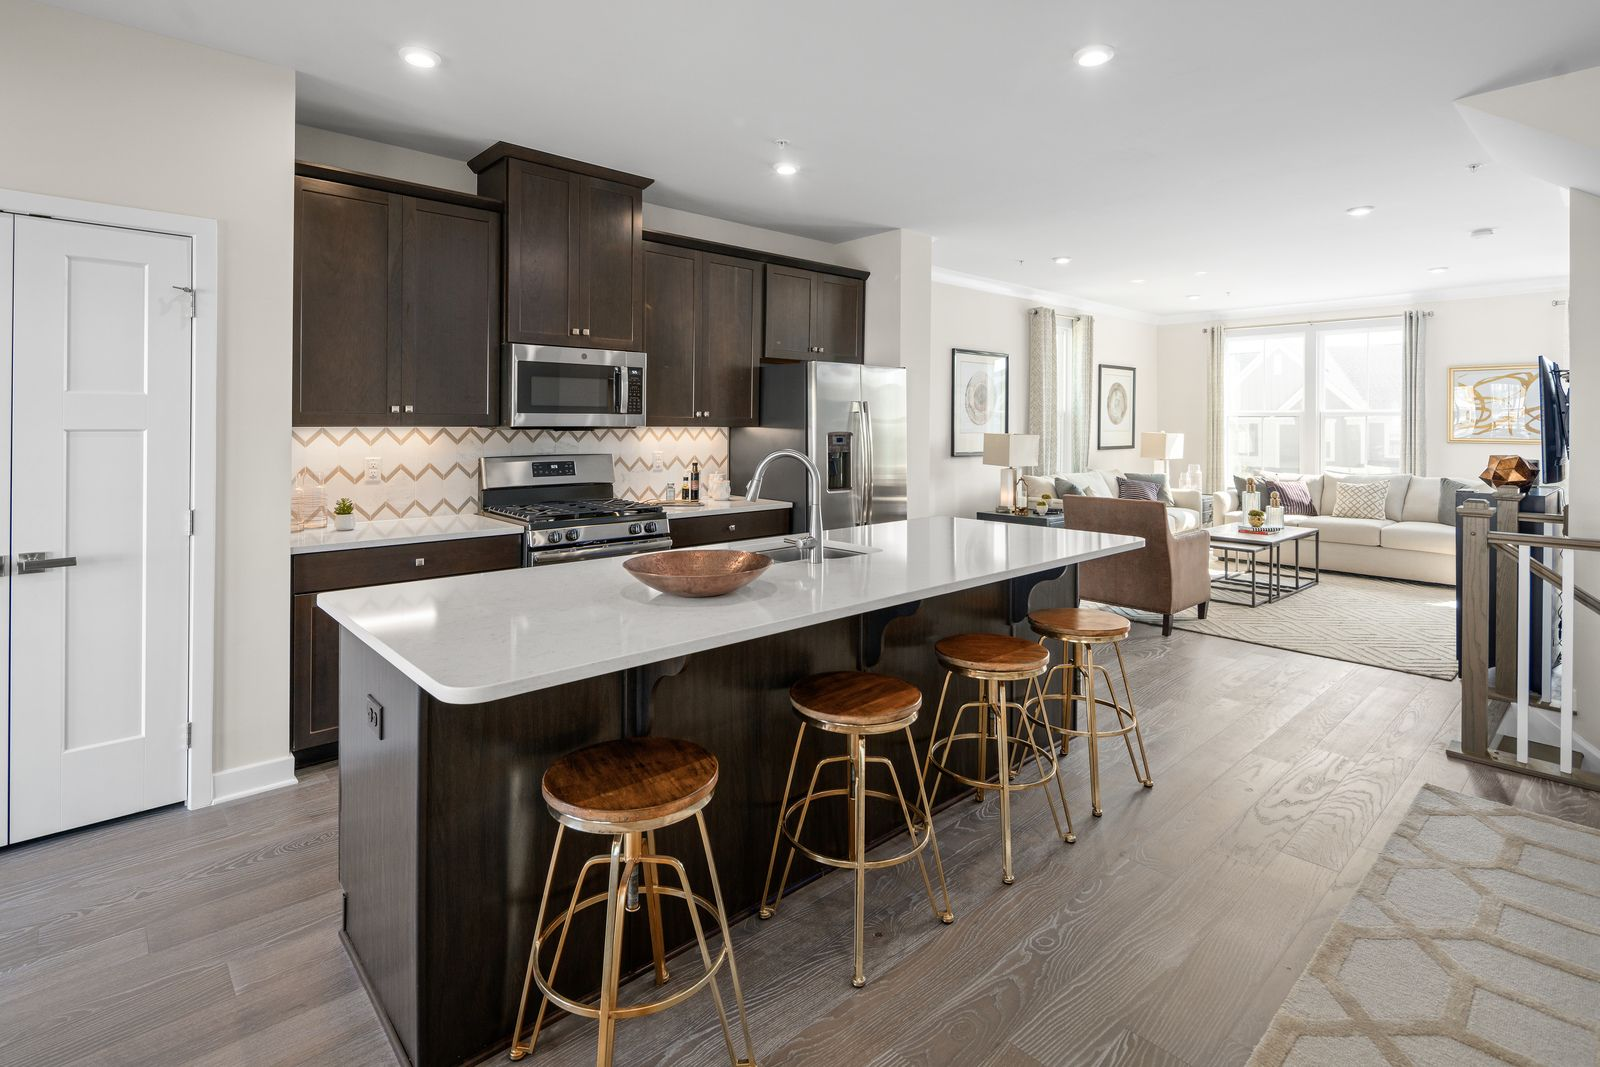 Kitchen featured in the Strauss By Ryan Homes in Charlotte, NC